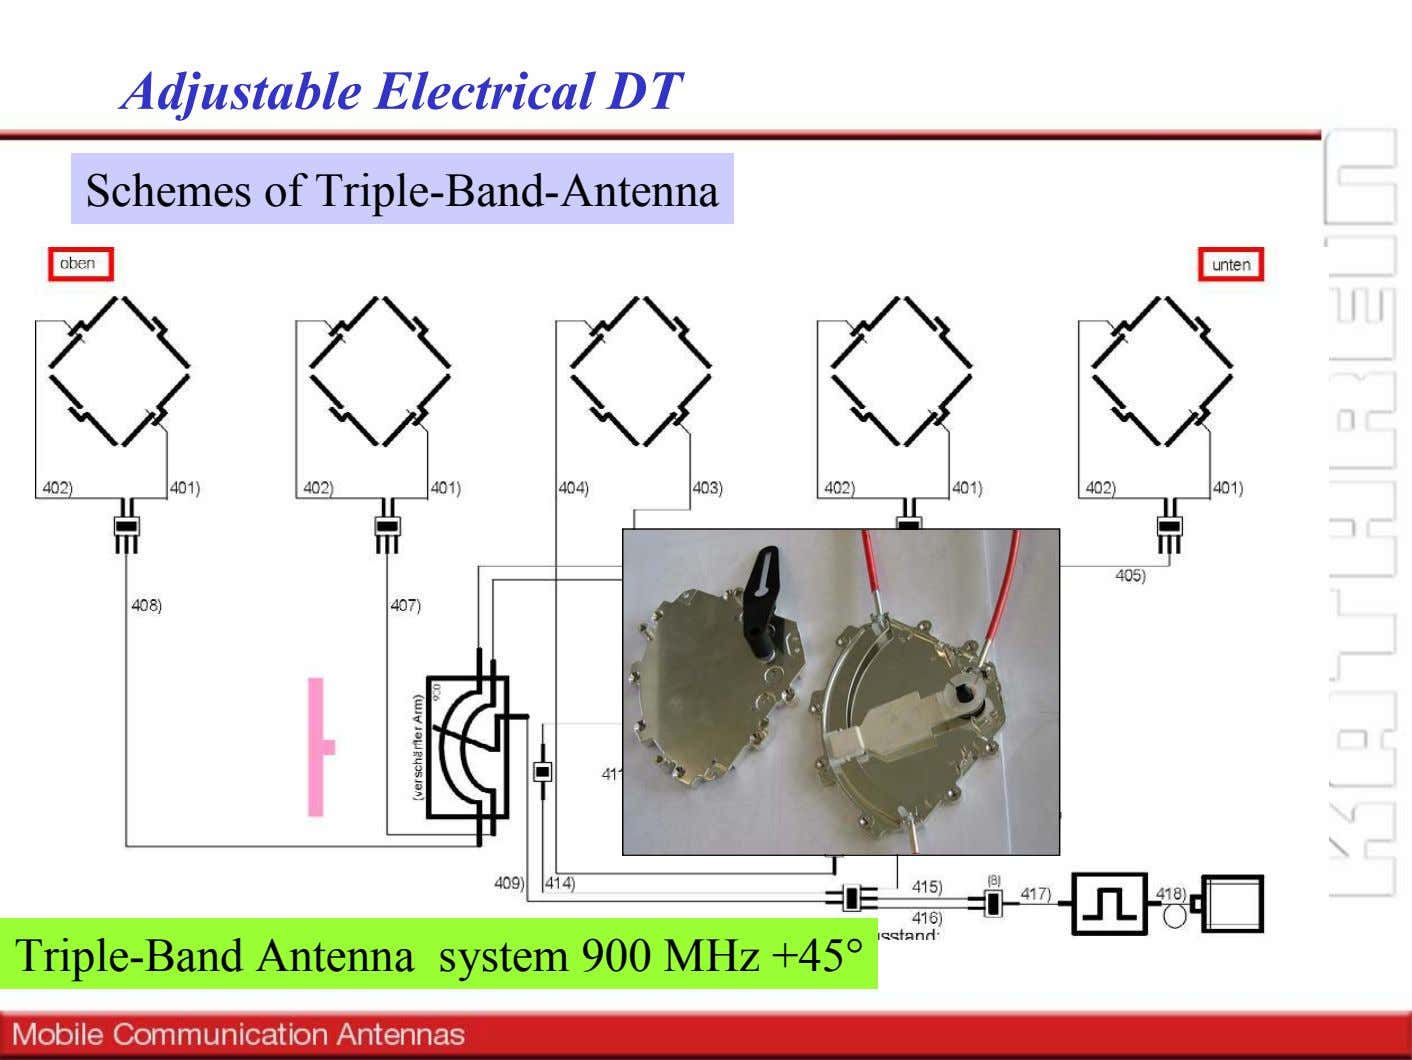 Adjustable Electrical DT Schemes of Triple-Band-Antenna Triple-Band Antenna system 900 MHz +45°